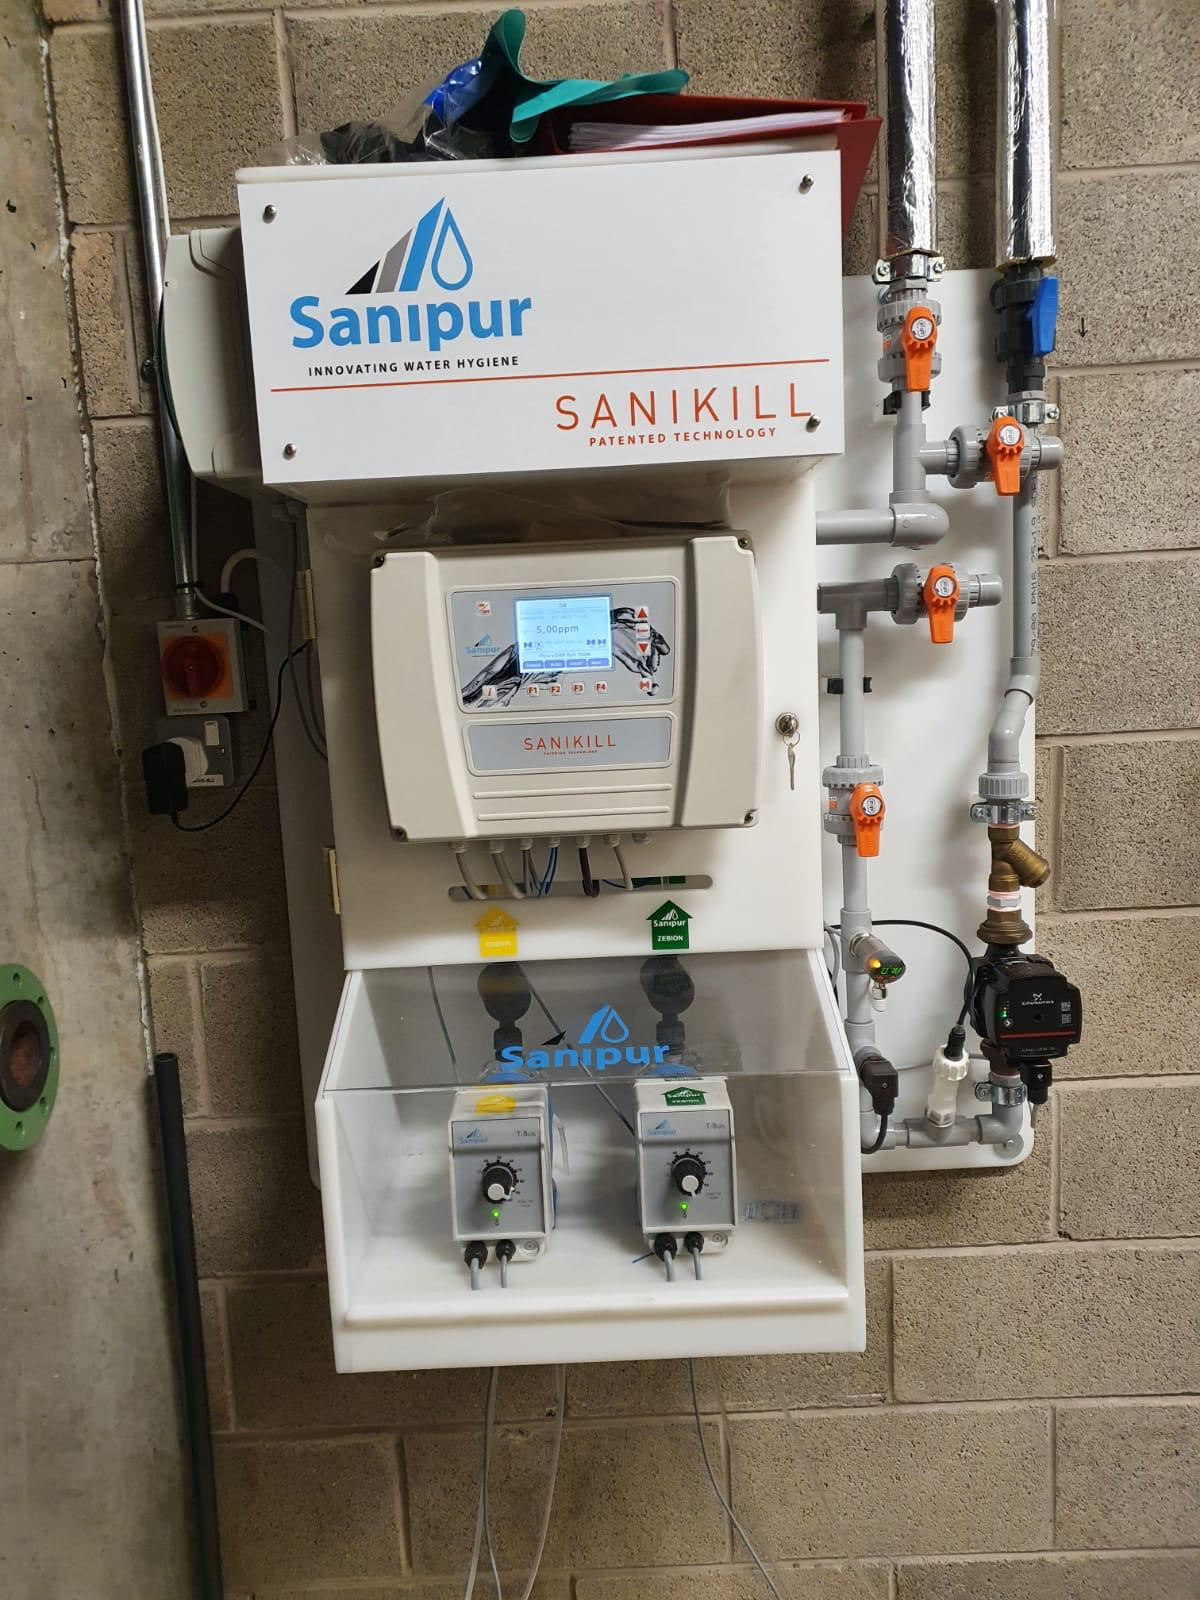 Monthly Checks on our Sanipur monochloramine water treatment units